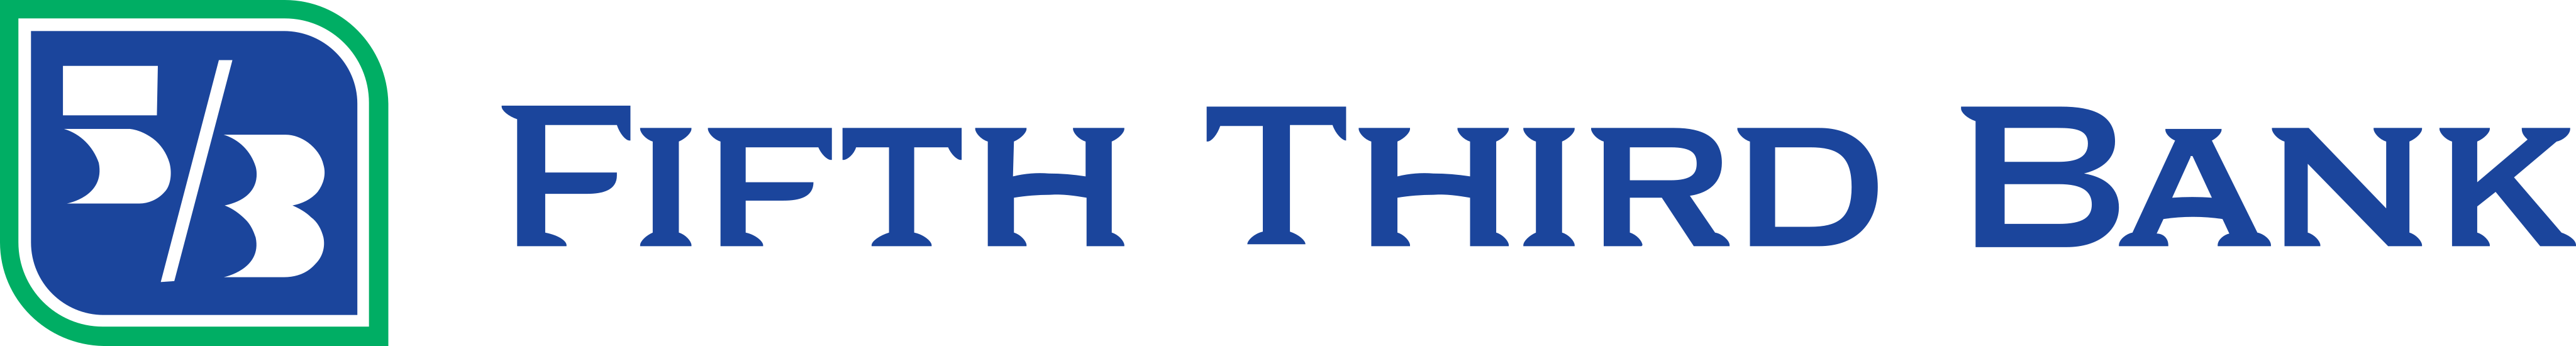 Fifth Third Bank Logo.